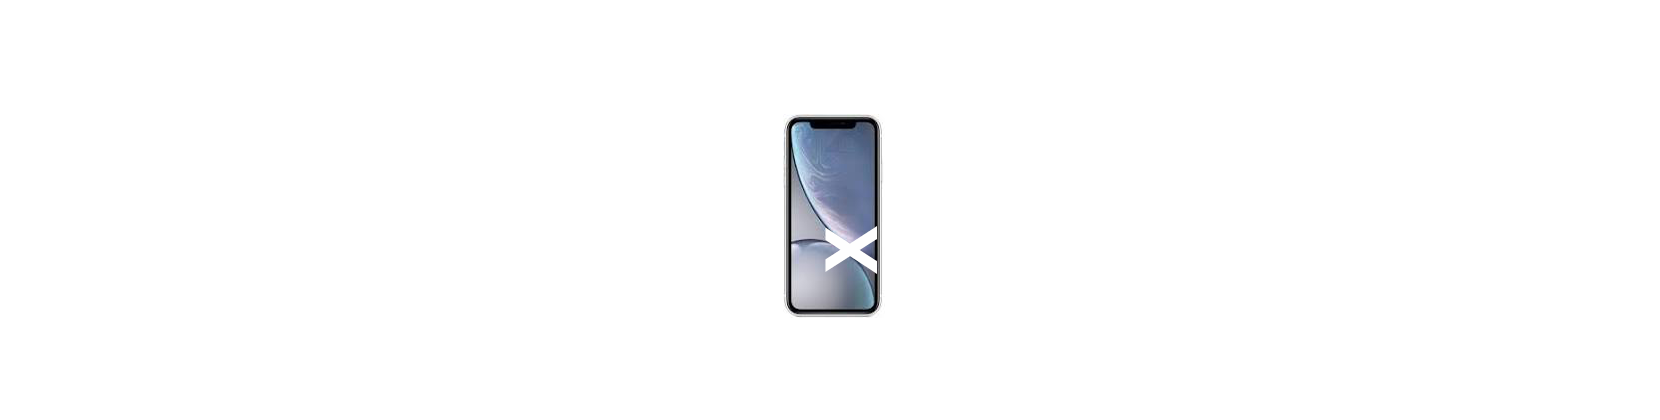 Spare parts for iPhone X